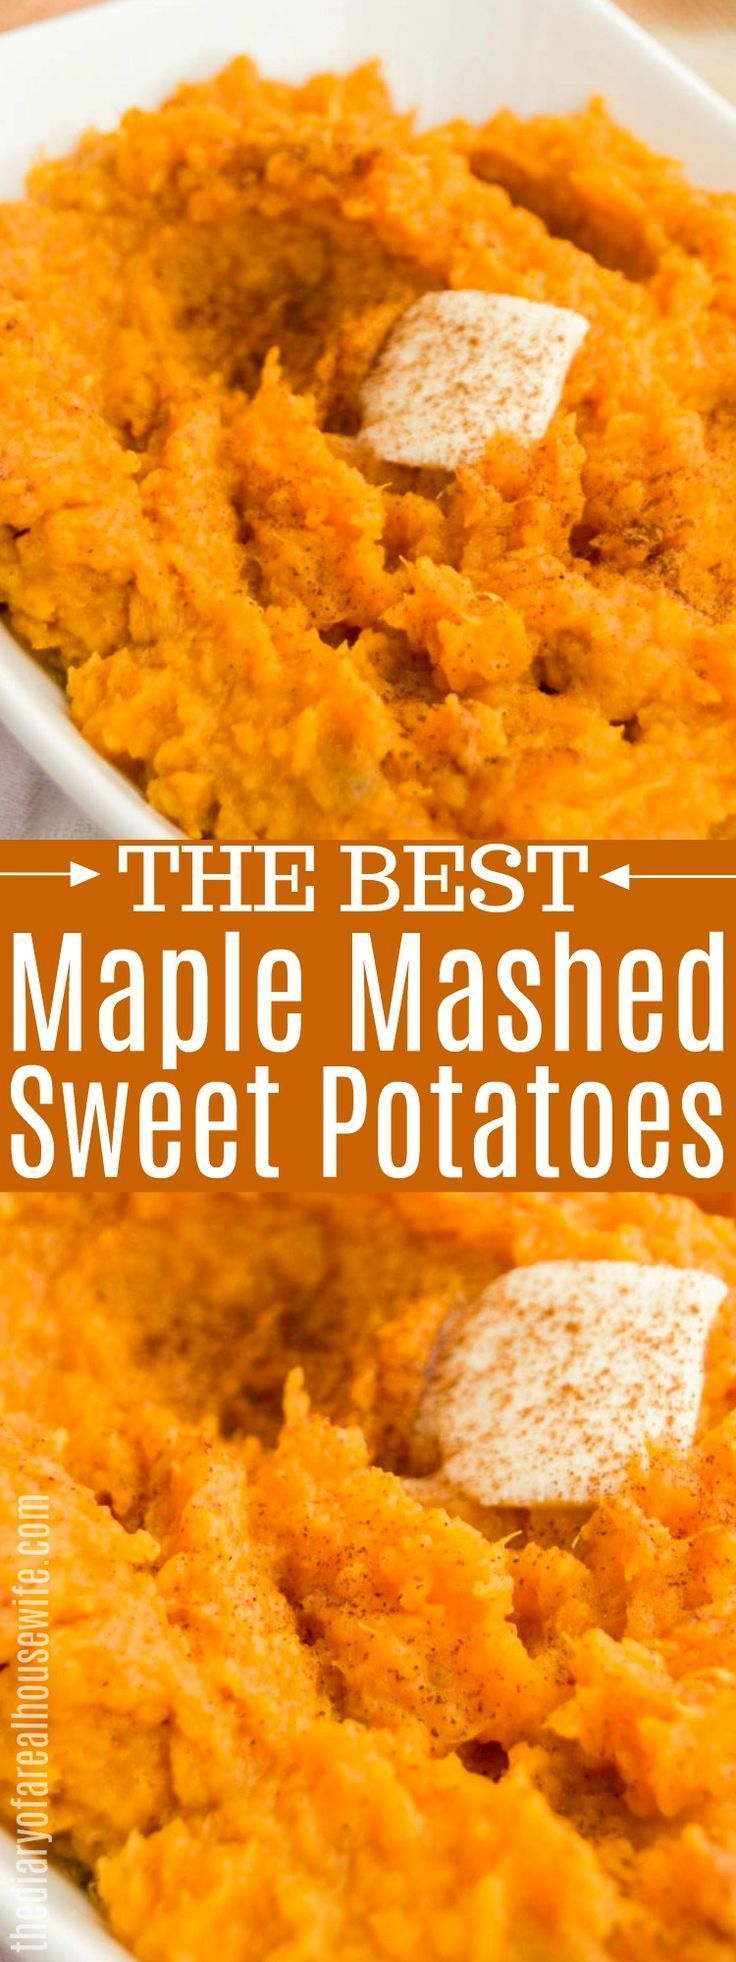 Mashed Sweet Potatoes - The Diary of a Real Housewife